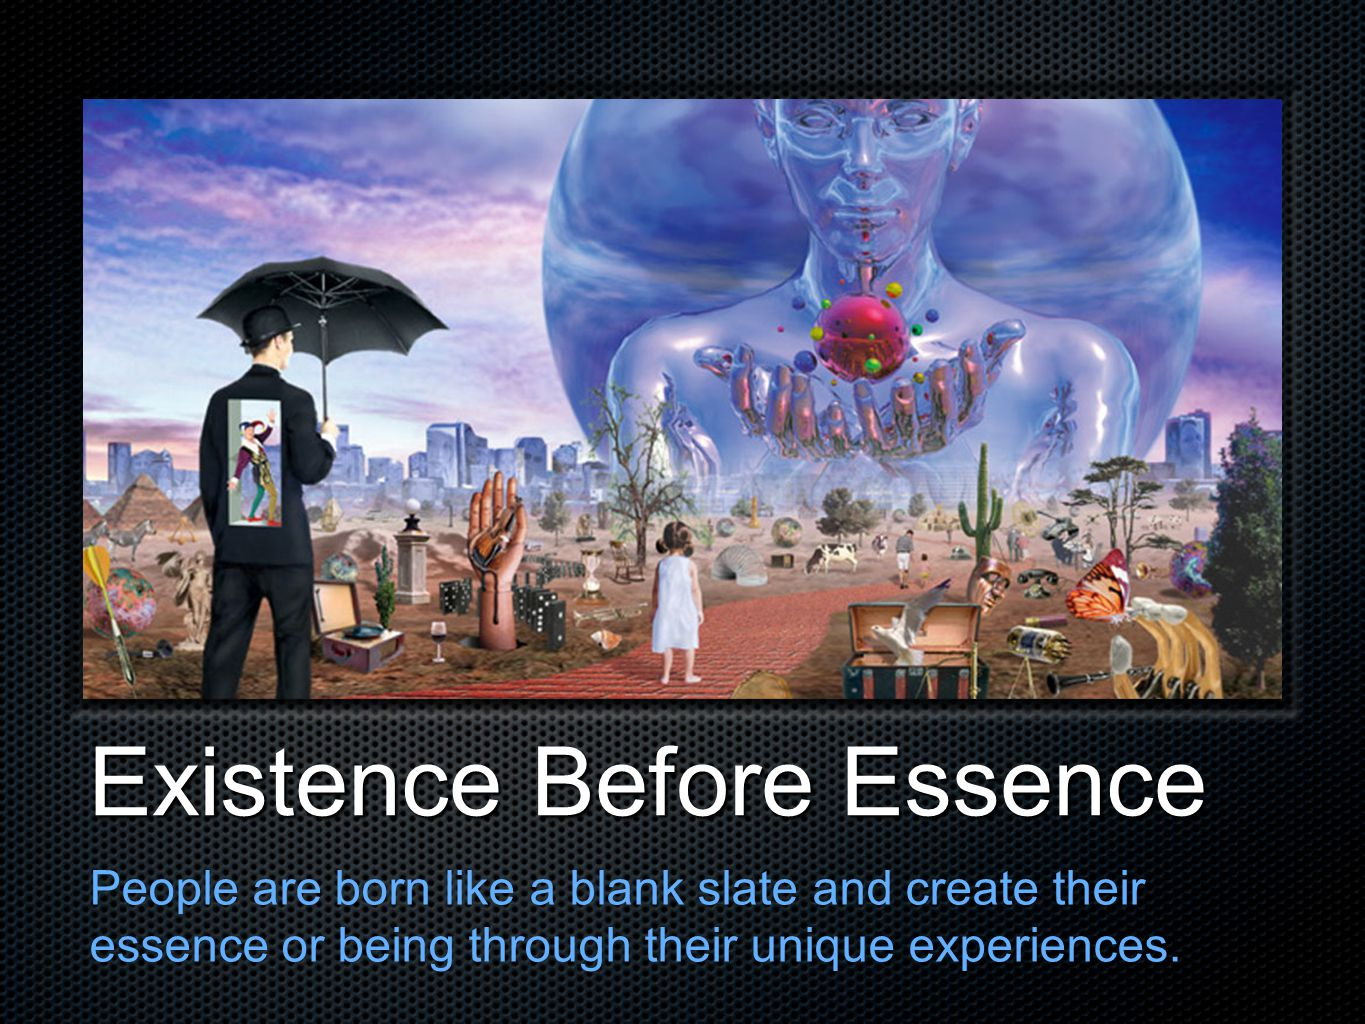 Existence Before Essence